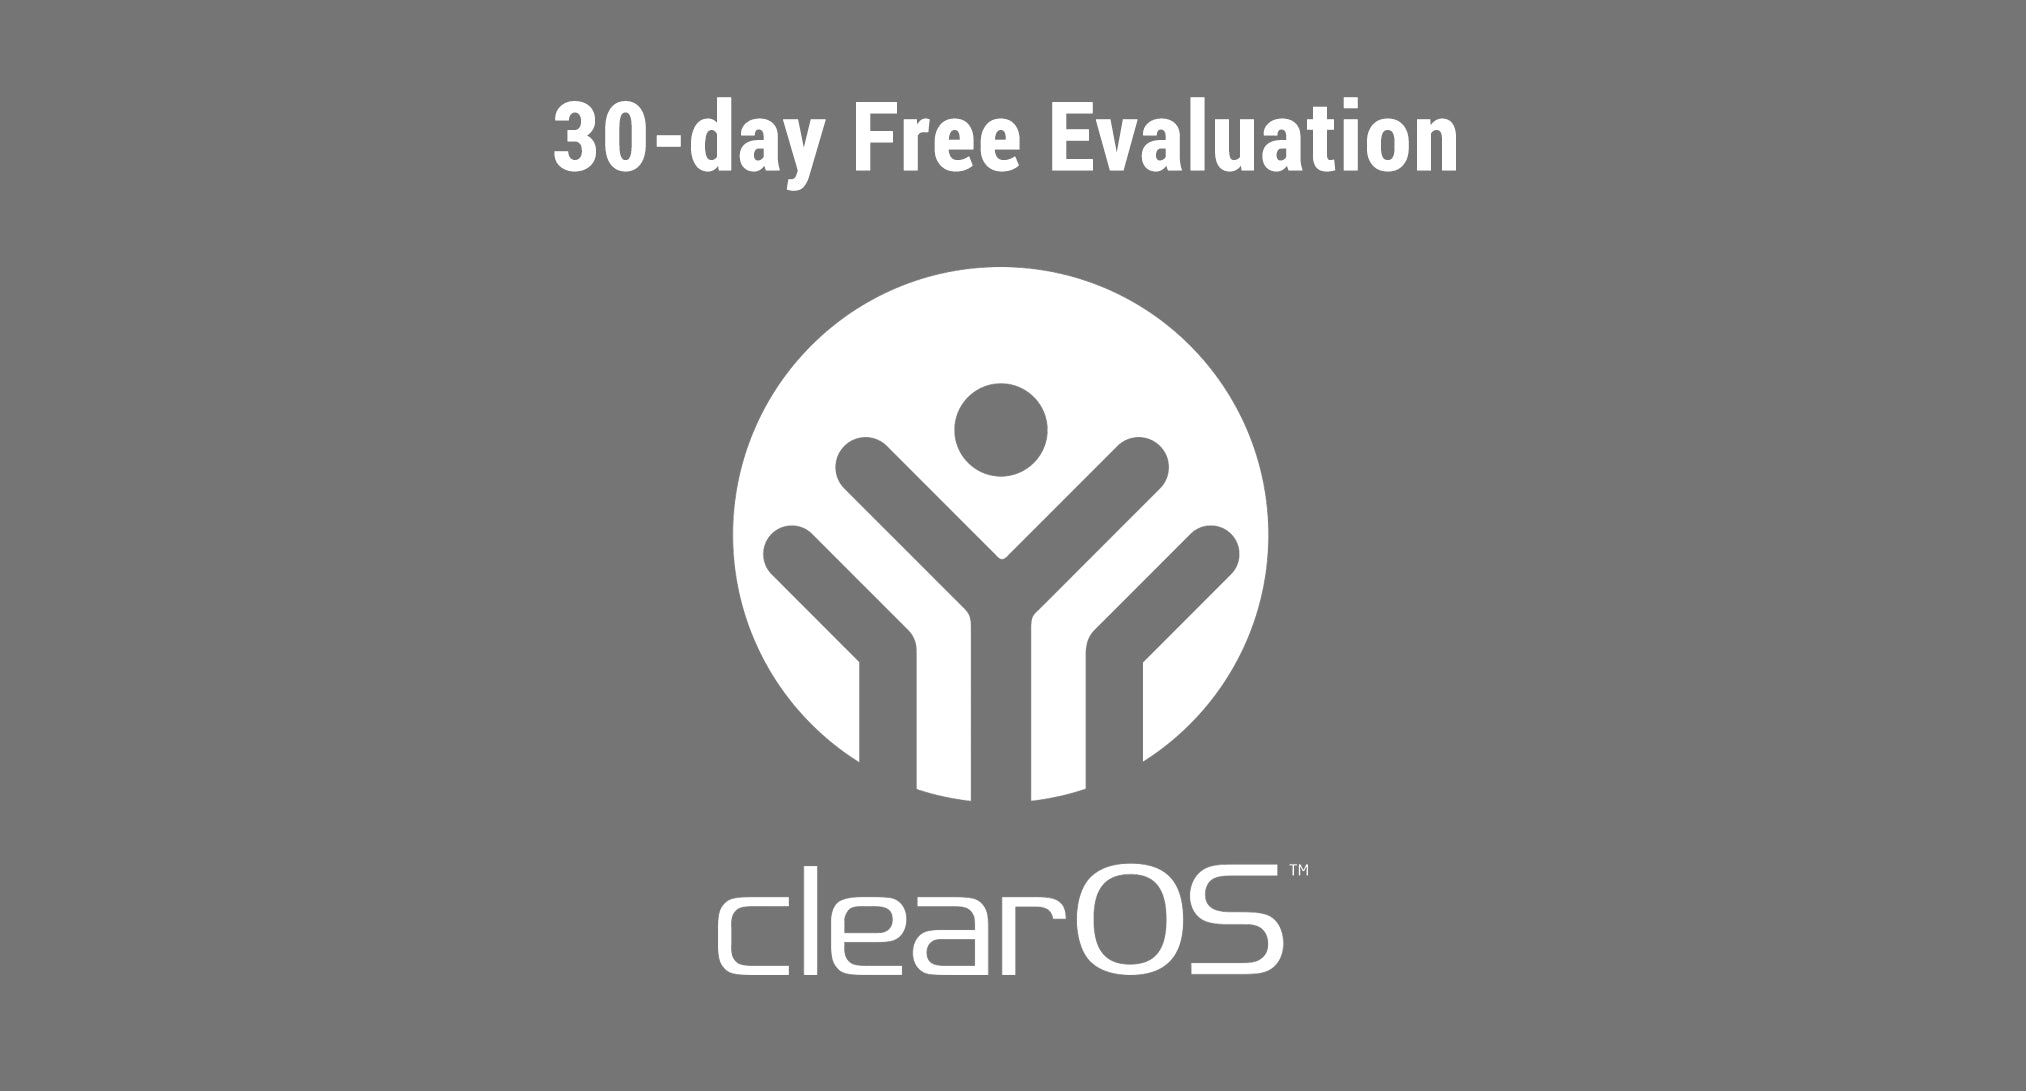 How to Get a Free ClearOS Business Edition 30-day Evaluation